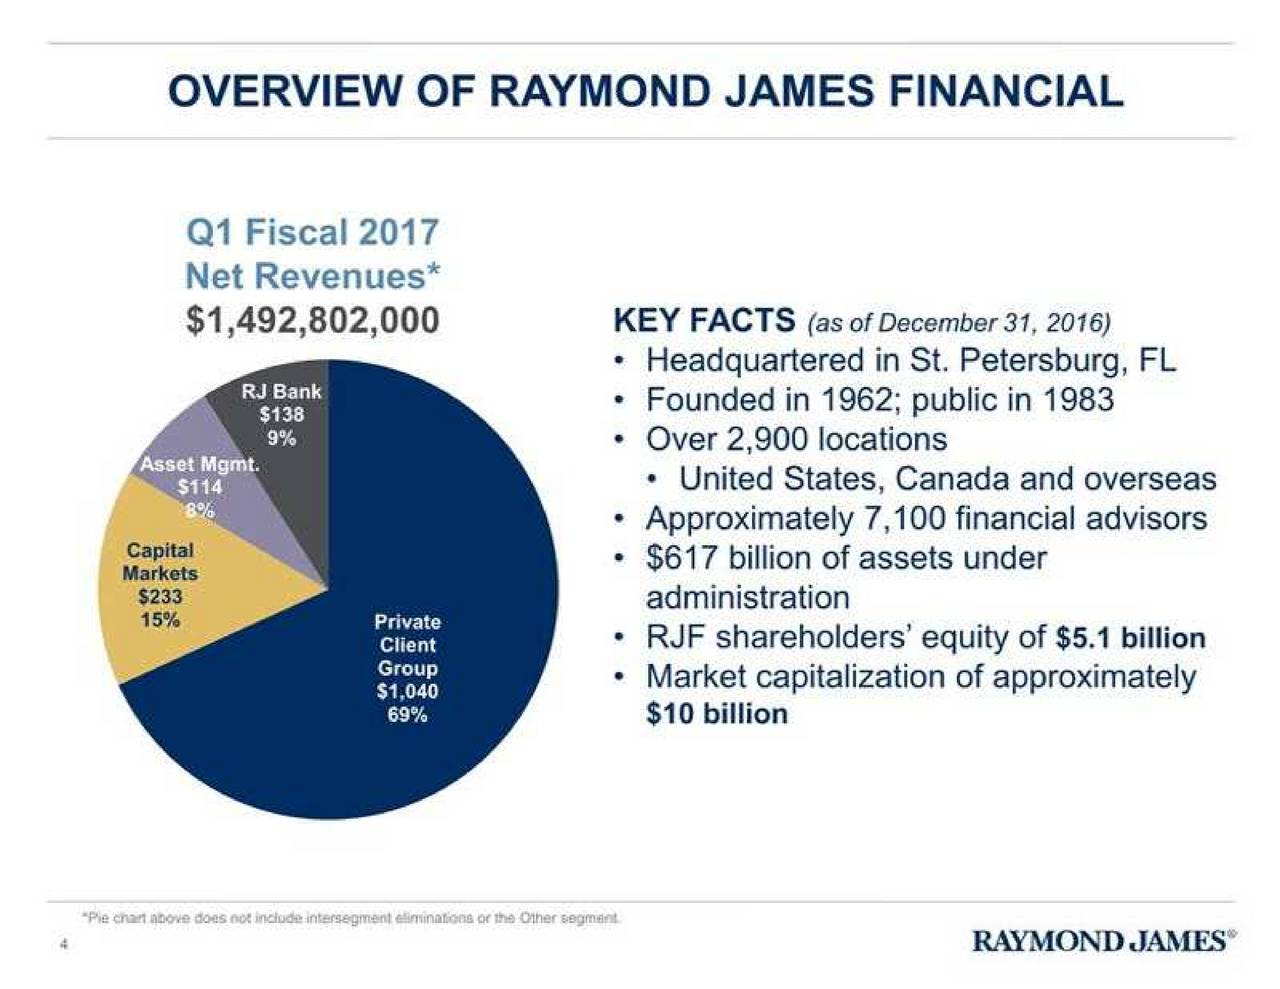 """raymond james financial quasi case analysis Raymond james launches """"goal planning & monitoring"""" - innovative new features that allow more sophisticated analysis for business raymond james financial."""